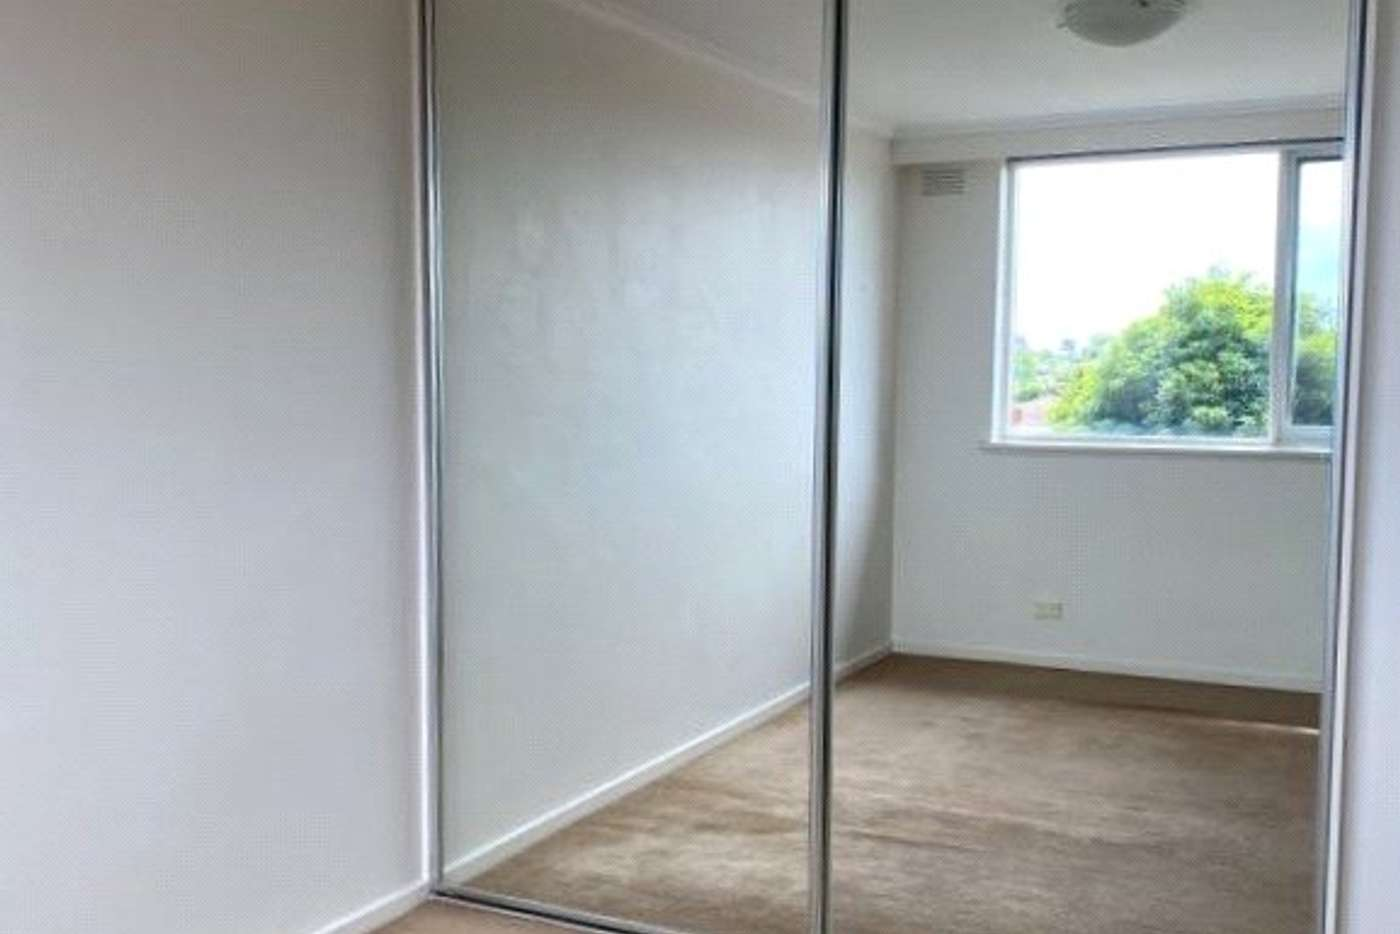 Sixth view of Homely apartment listing, 9/49 Wilson Street, Cheltenham VIC 3192